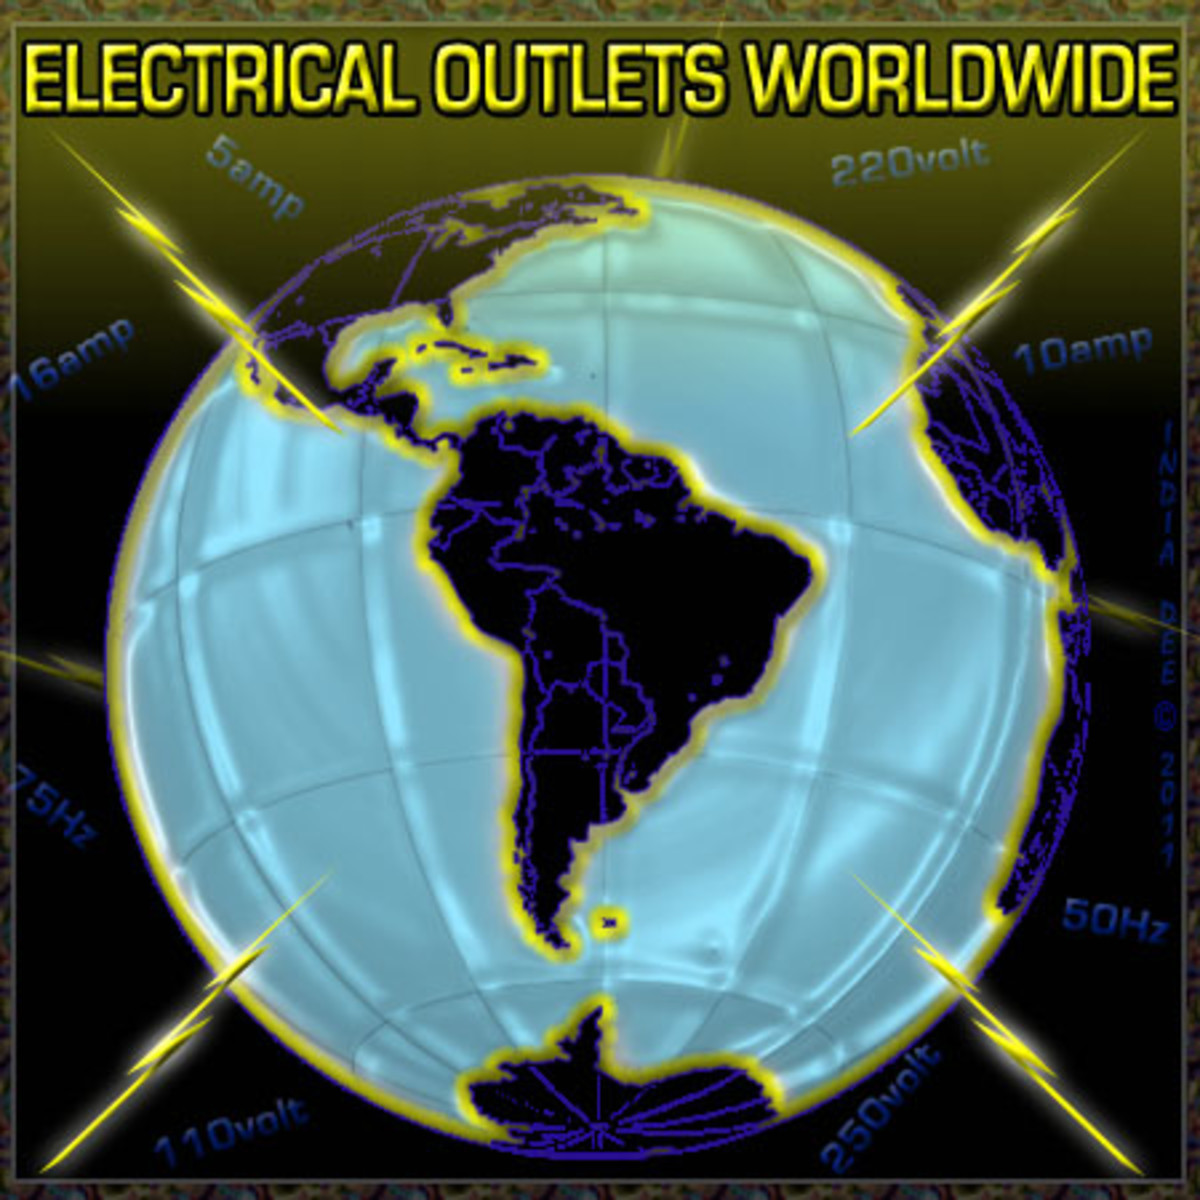 Electrical outlets around the world